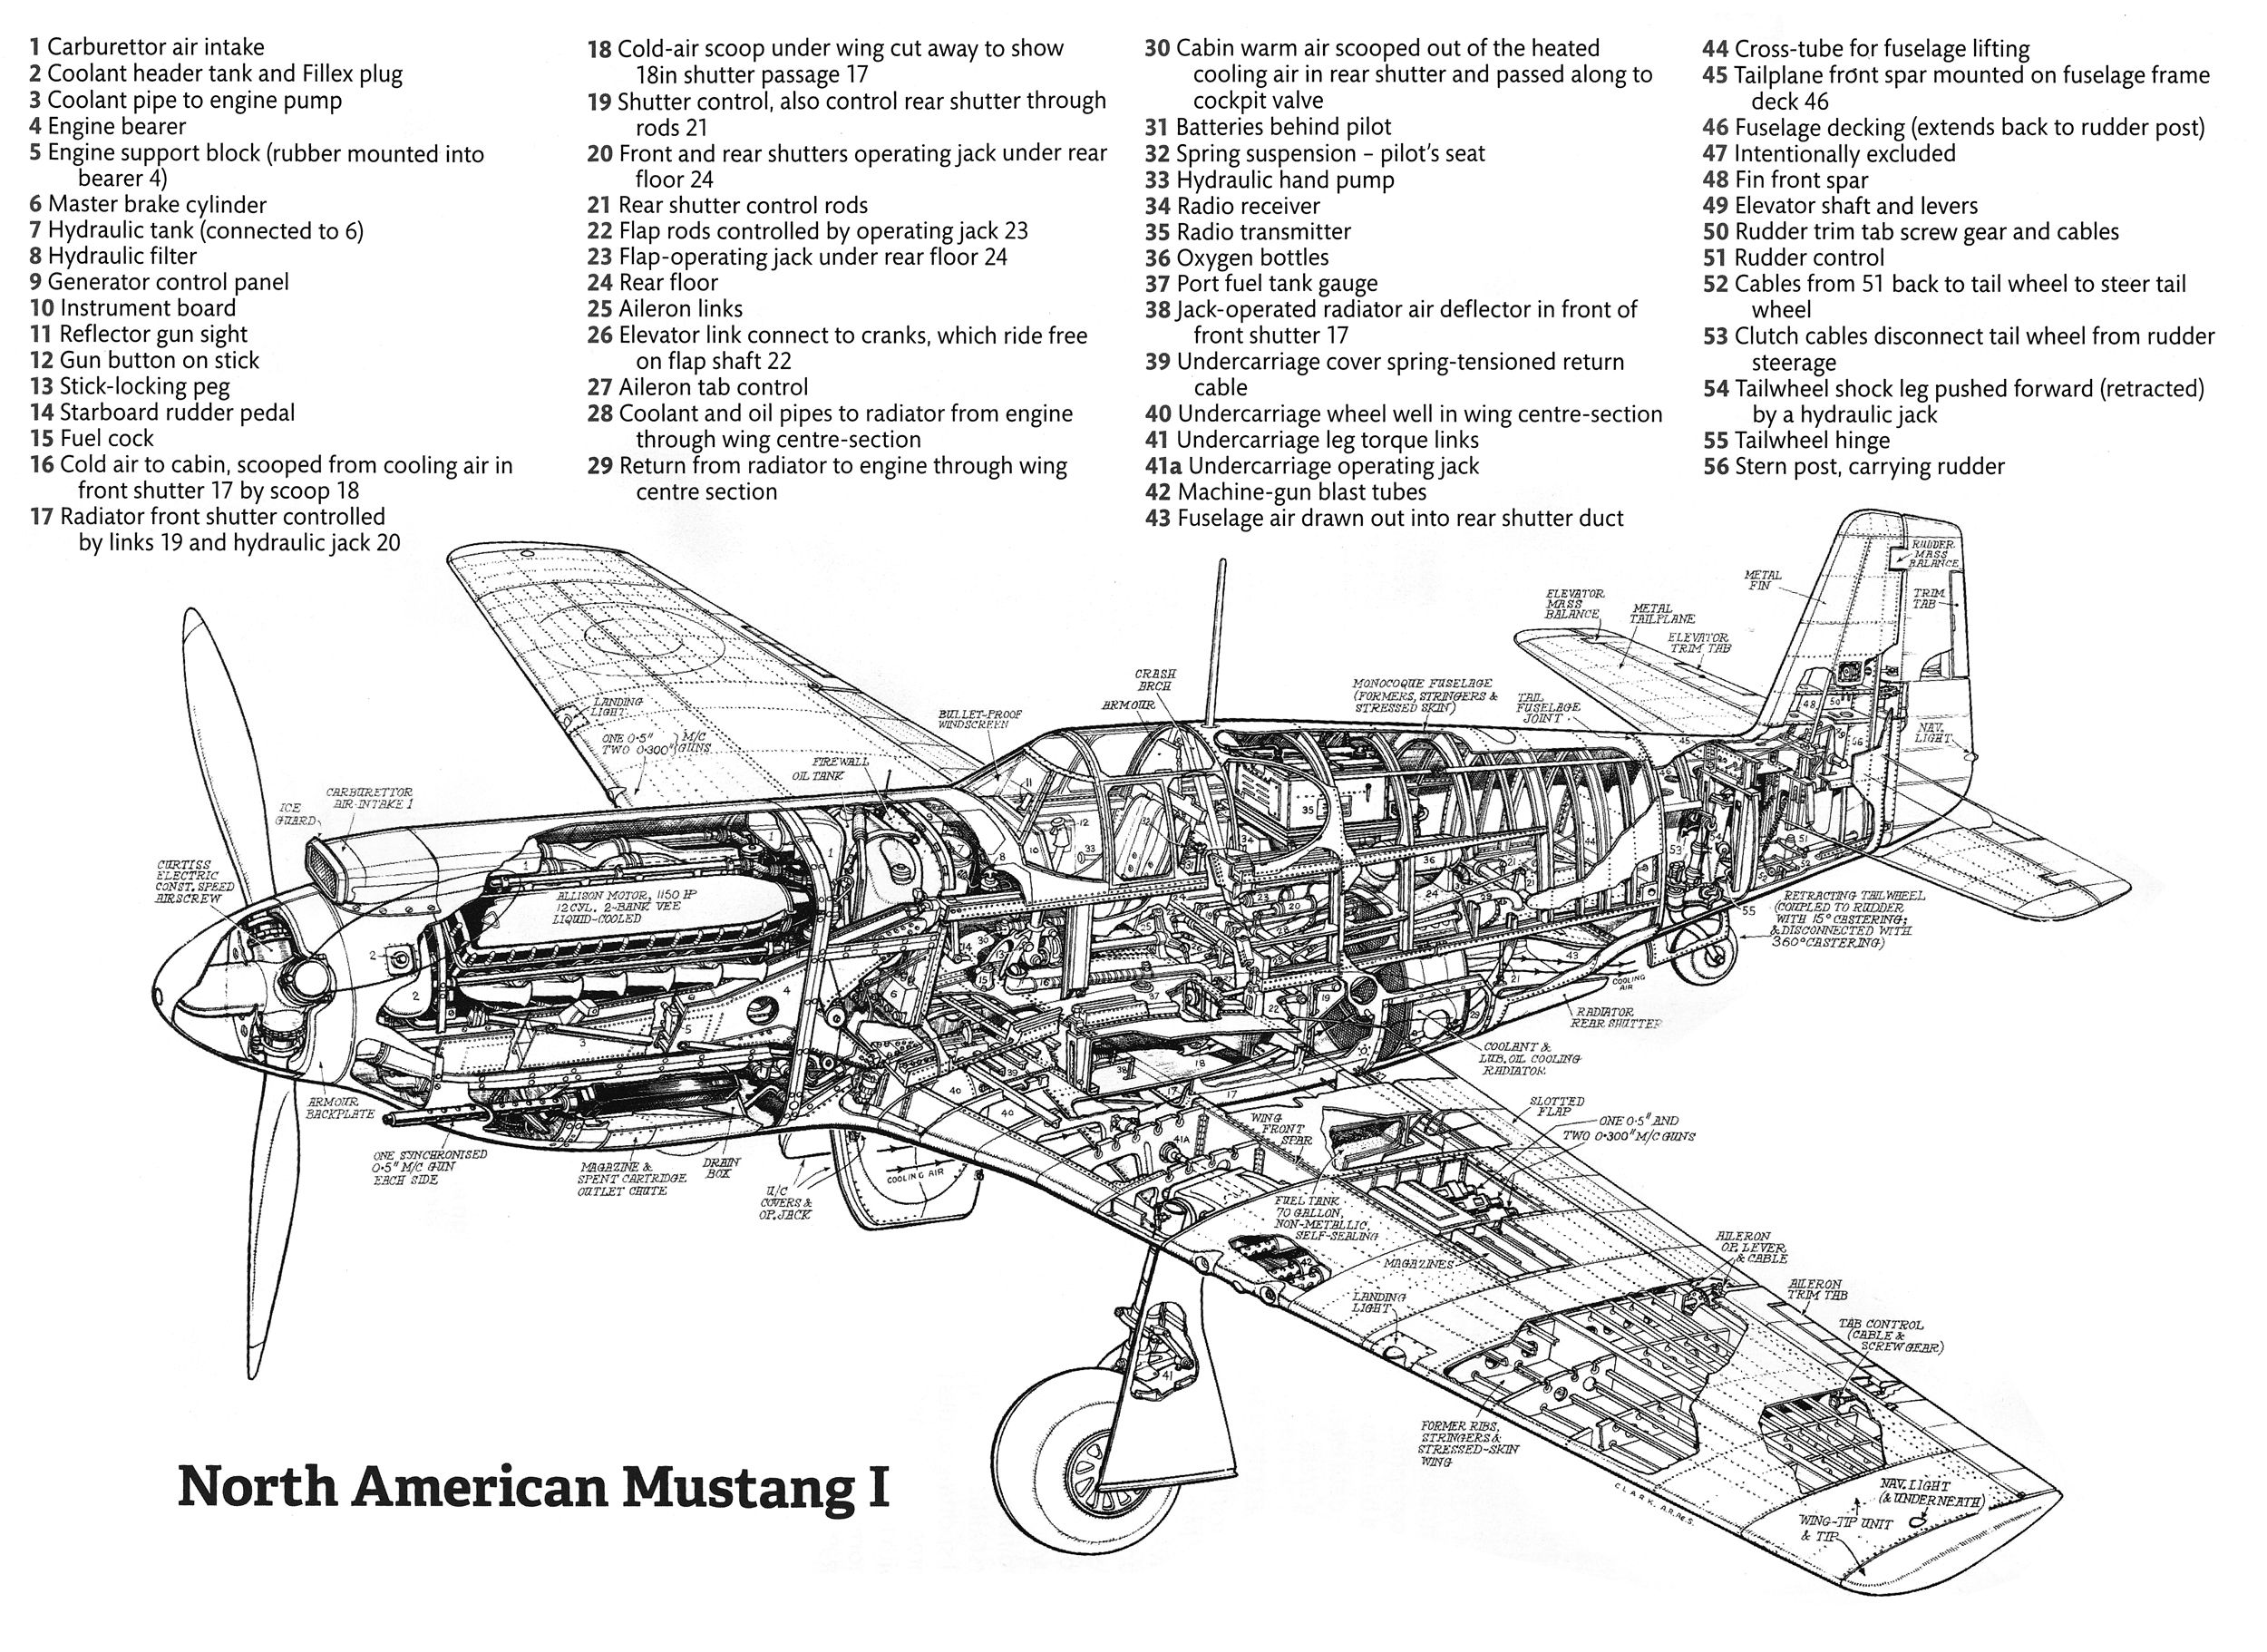 North American Mustang